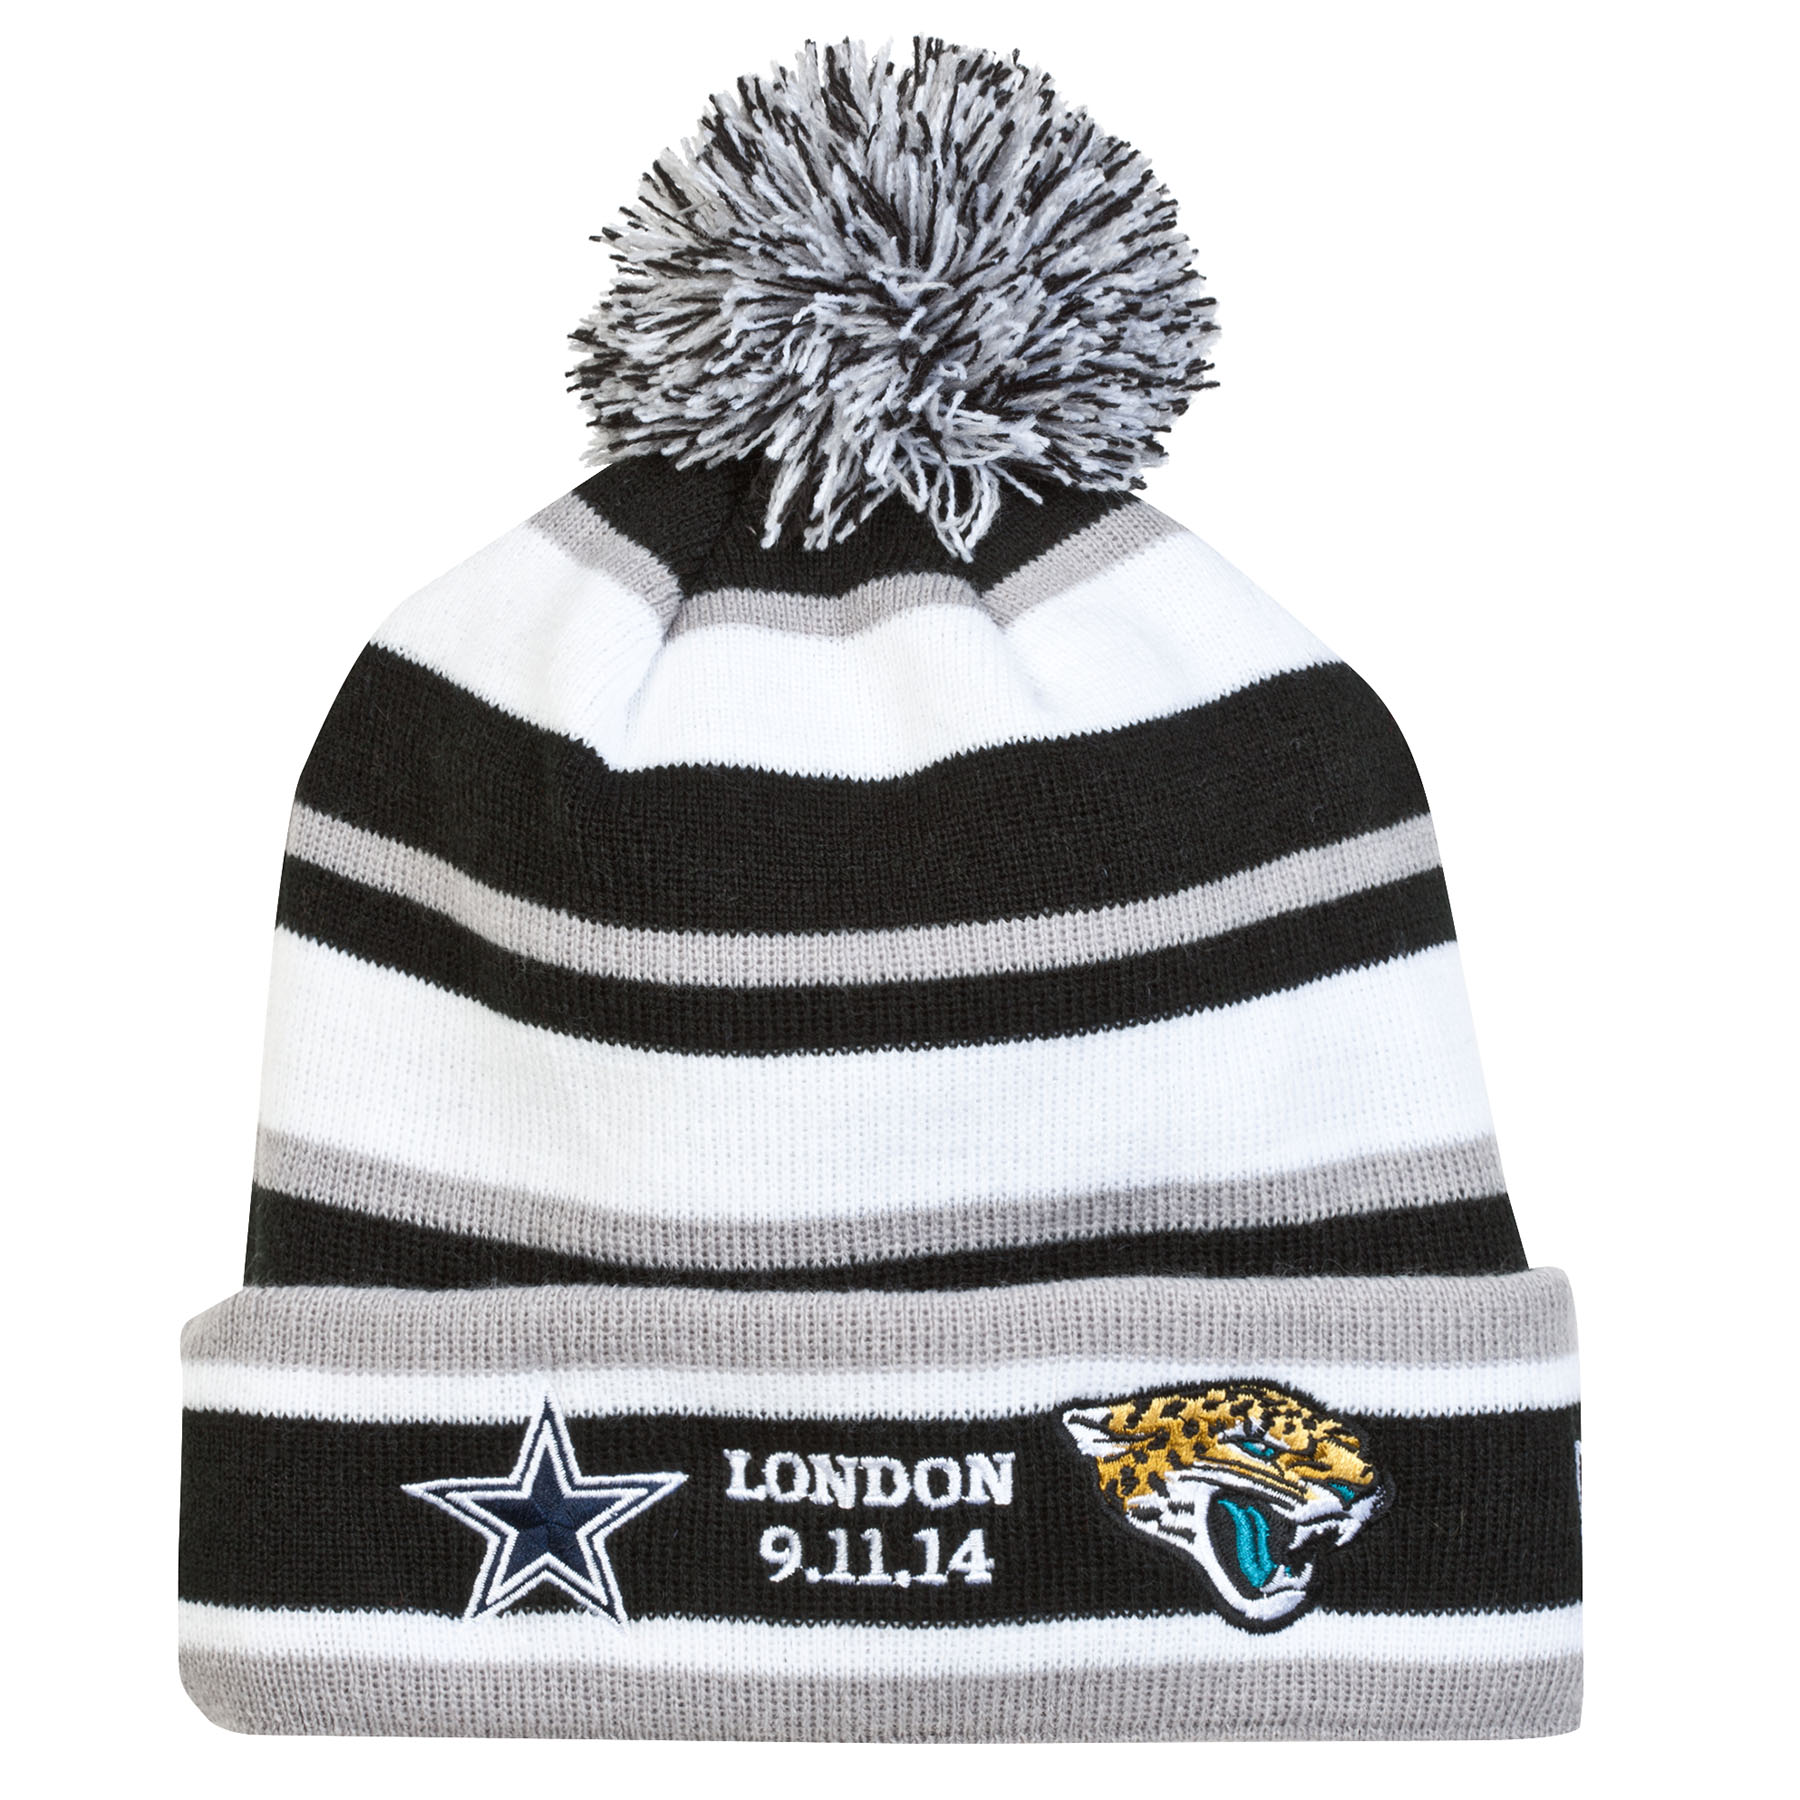 NFL International Series Game 11 New Era Sport Knit Fleece Hat - Cowboys - Jaguars